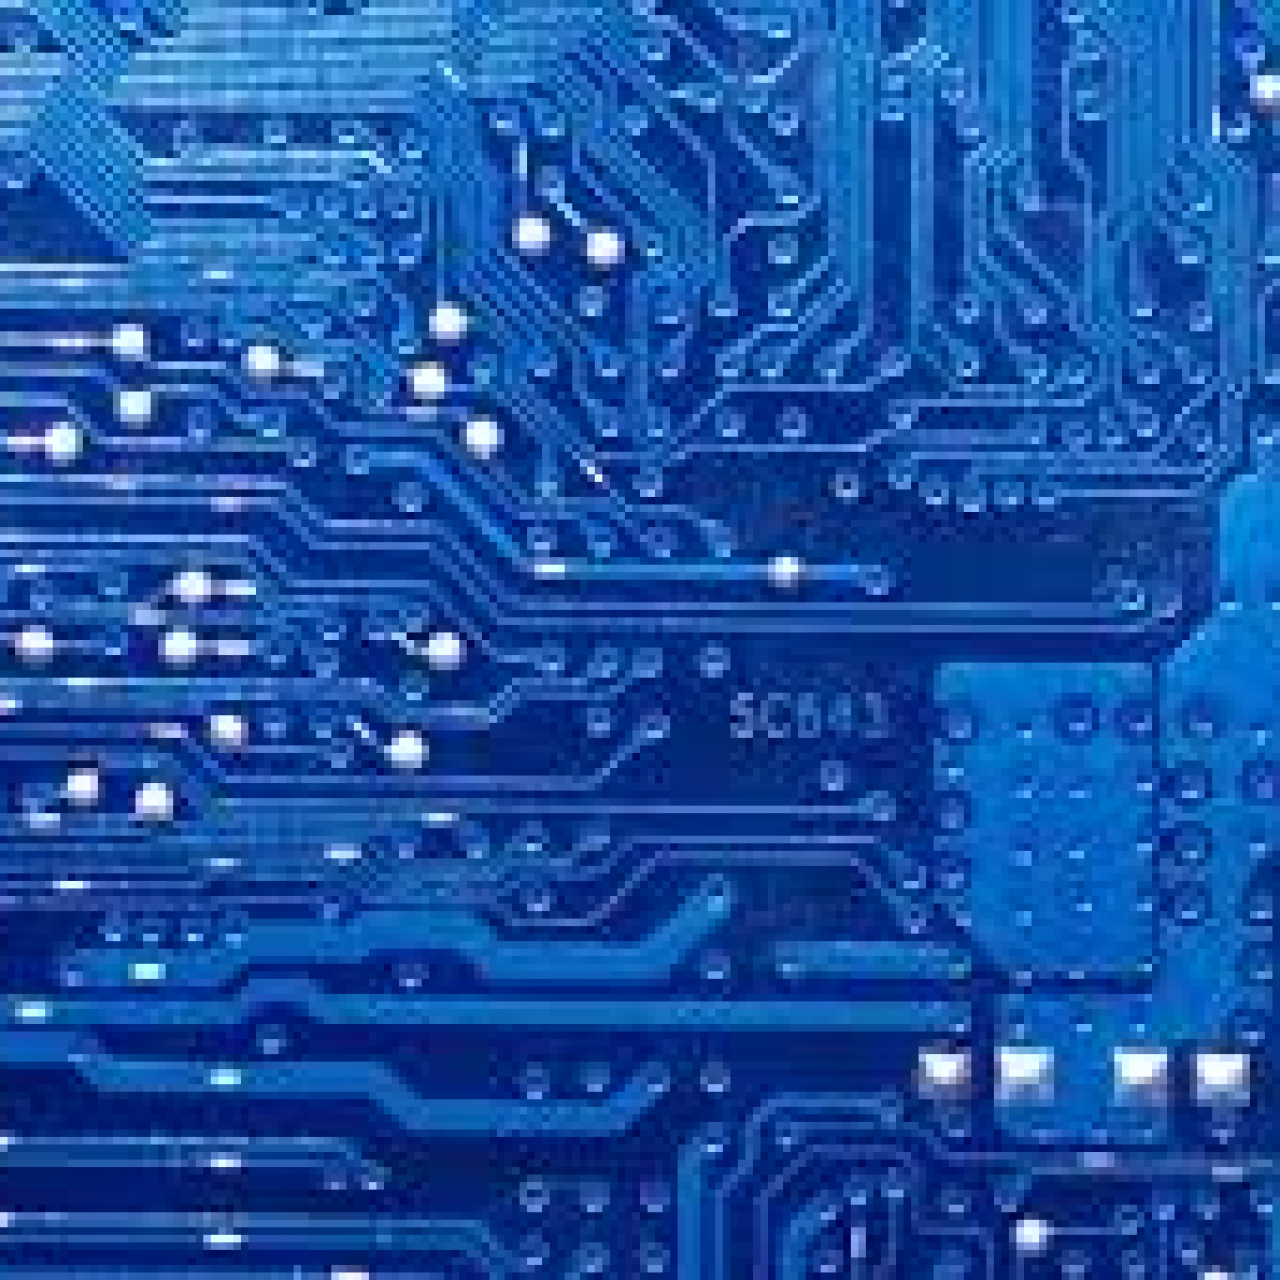 Electronics Manufacturing Printed Circuit Boards News Pcb Fabrication And Electronic Manufacture Train Aegis Software Announces New Integration With Omron For Superior Data Collection Quality